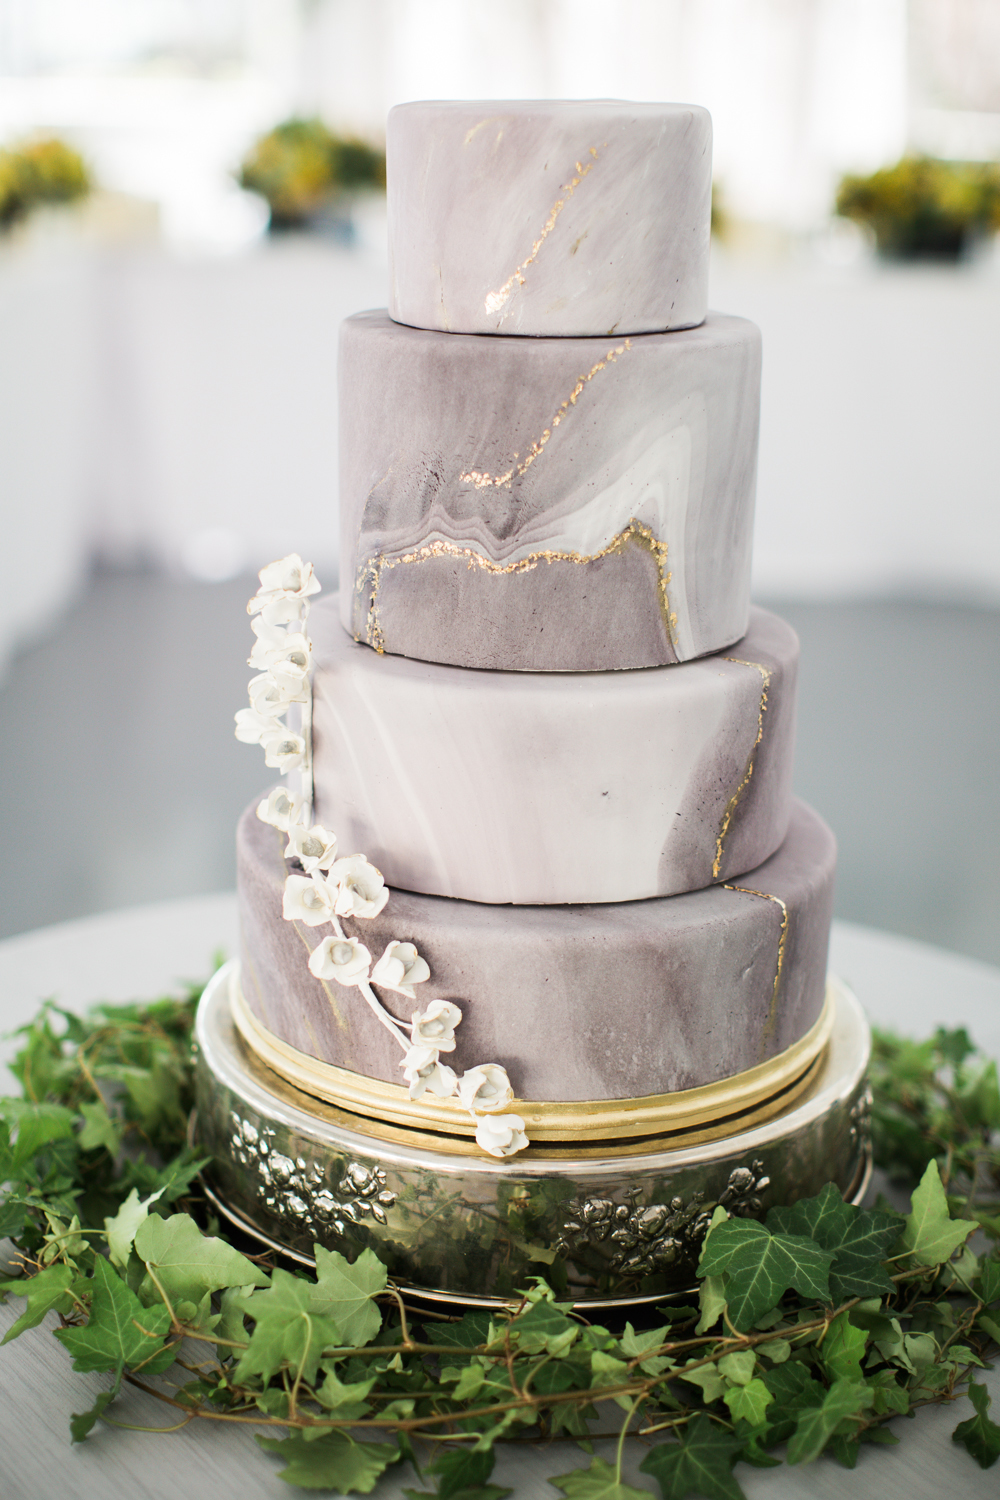 Gray & white marbled fondant wedding cake